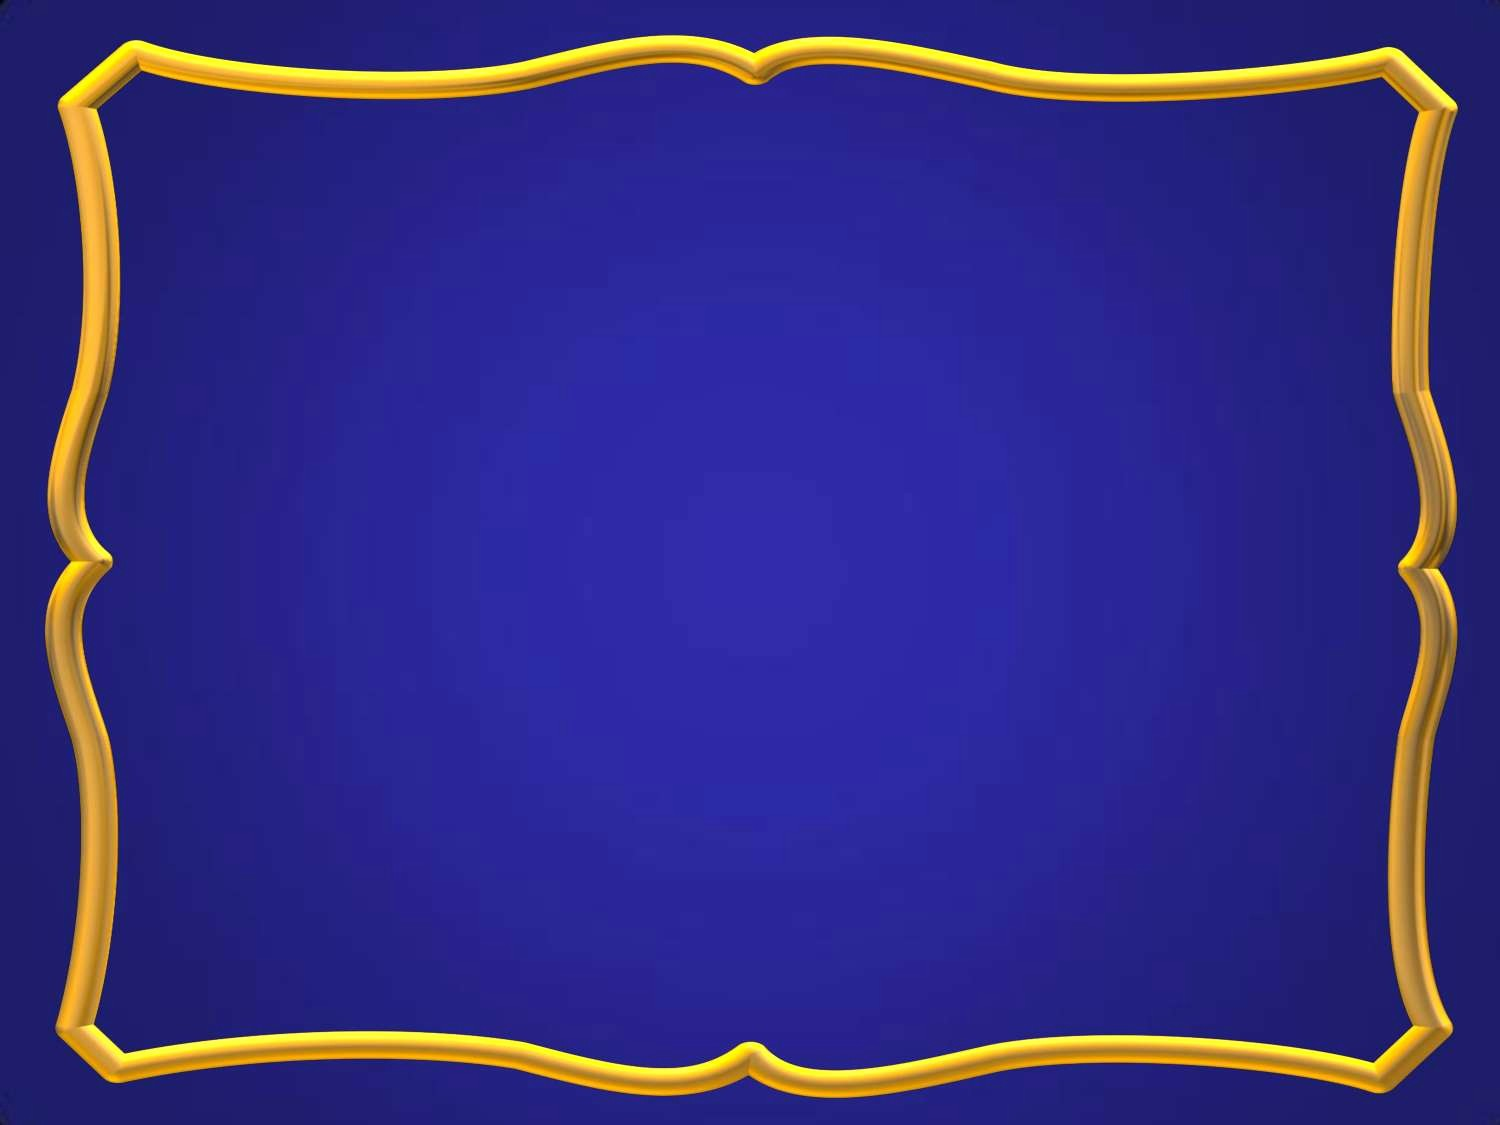 Blue and Gold Powerpoint Template Fresh Blue Gold Frame Free Ppt Backgrounds for Your Powerpoint